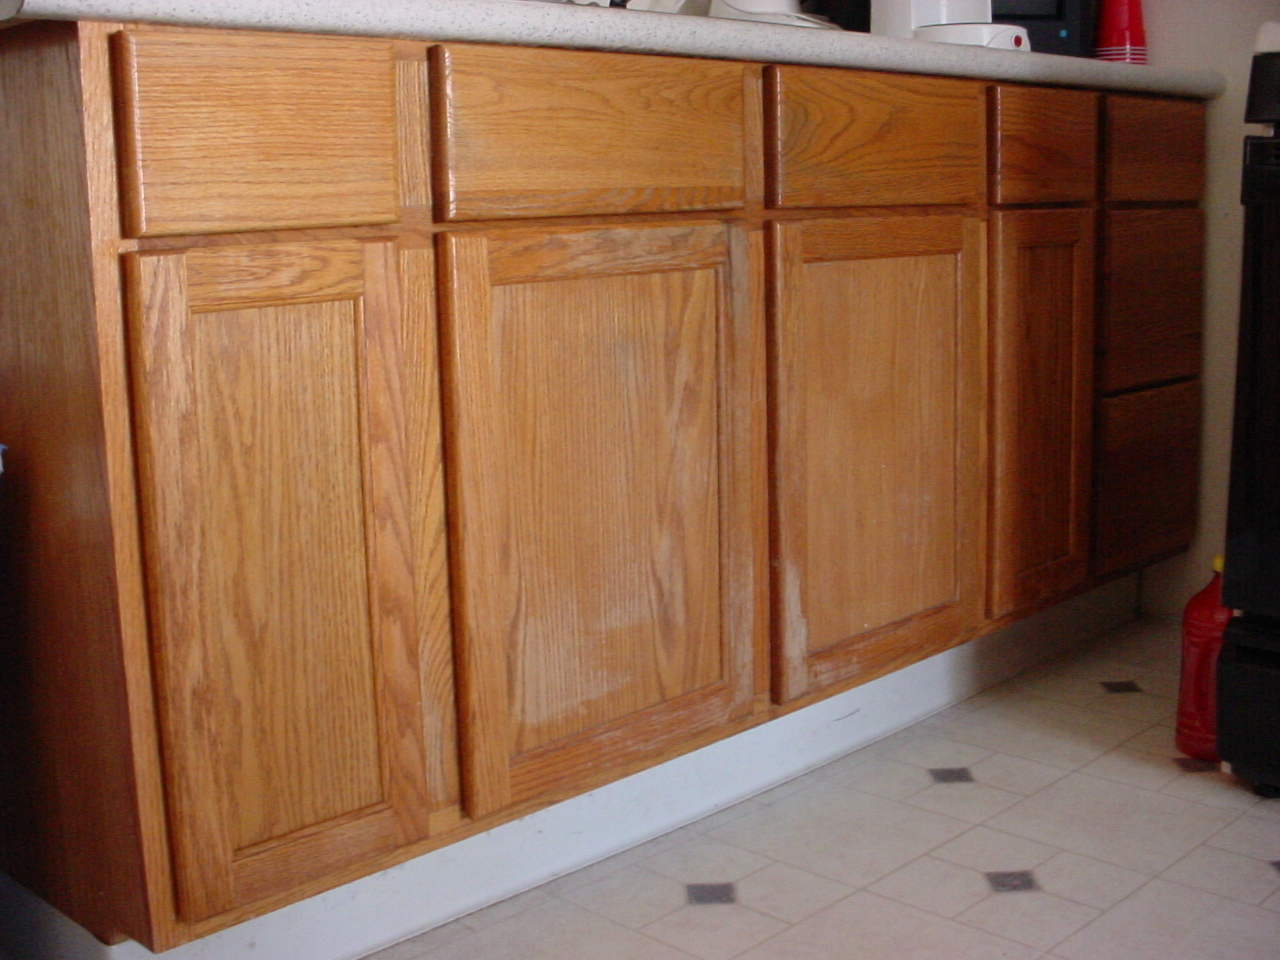 Kitchen cabinets re staining service no need to waste for Can i stain my kitchen cabinets darker